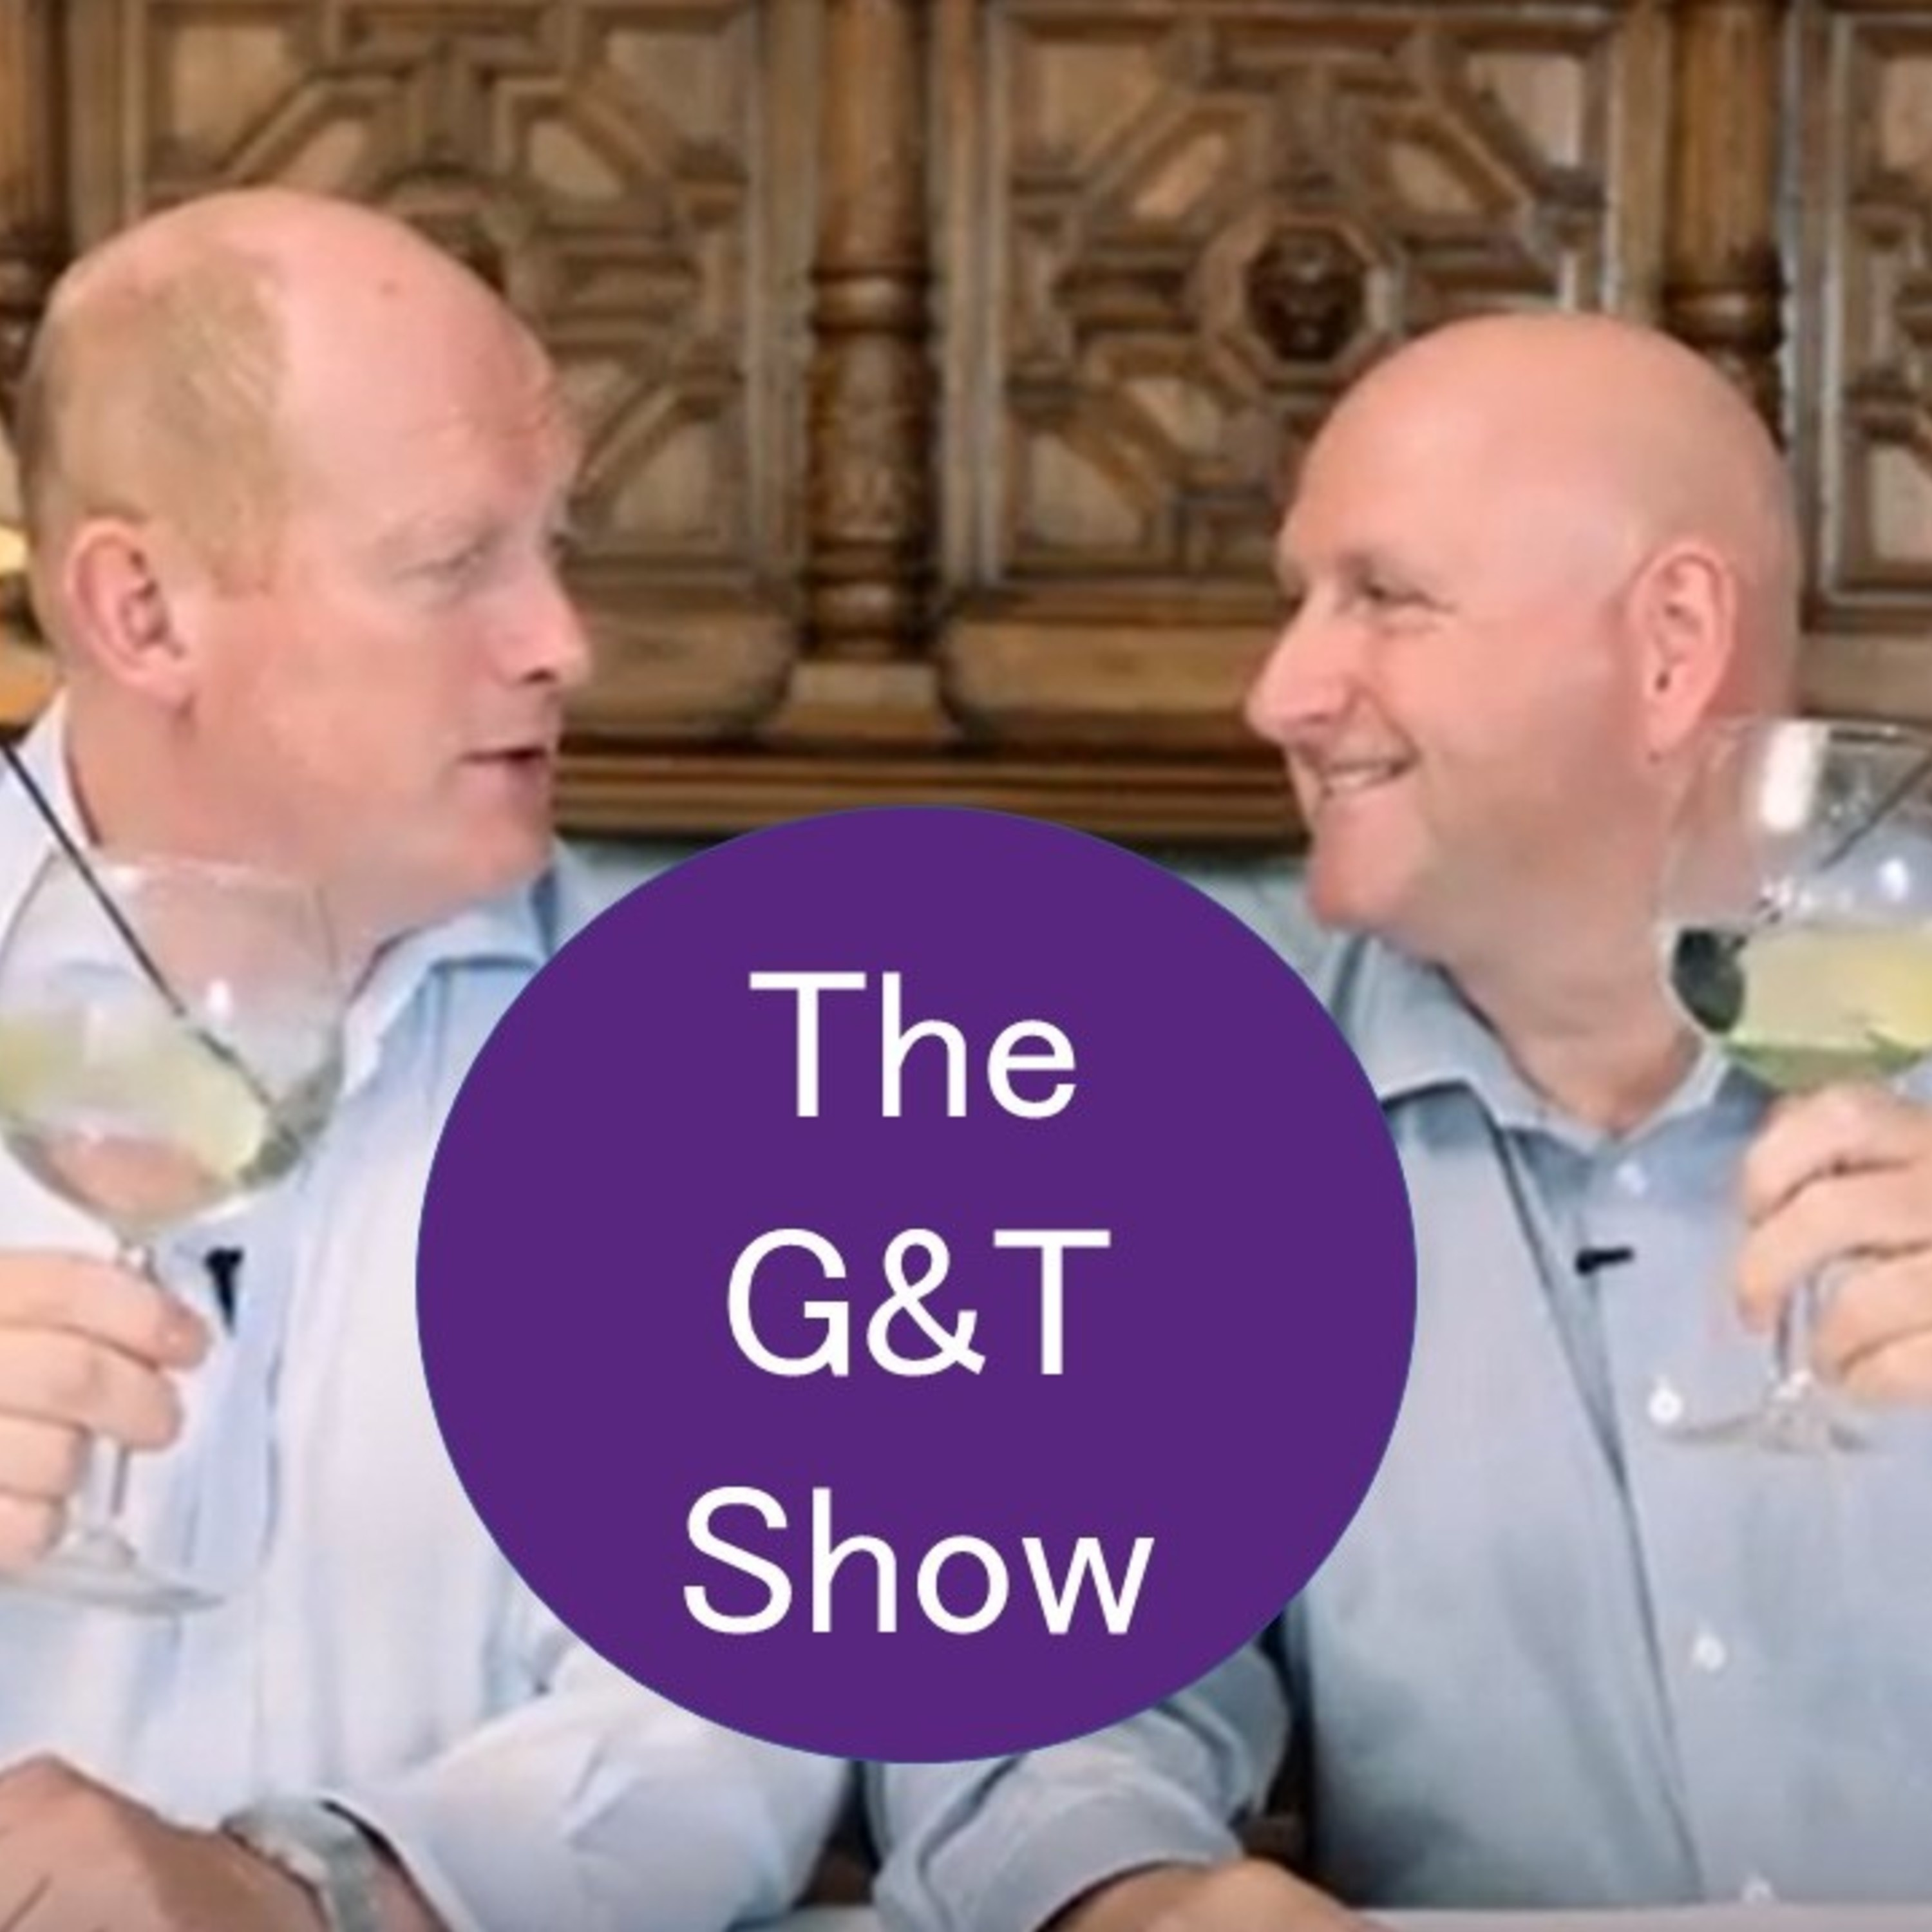 GBTV - G&T with Guy and Terry - why you shouldn't buy a distressed business.